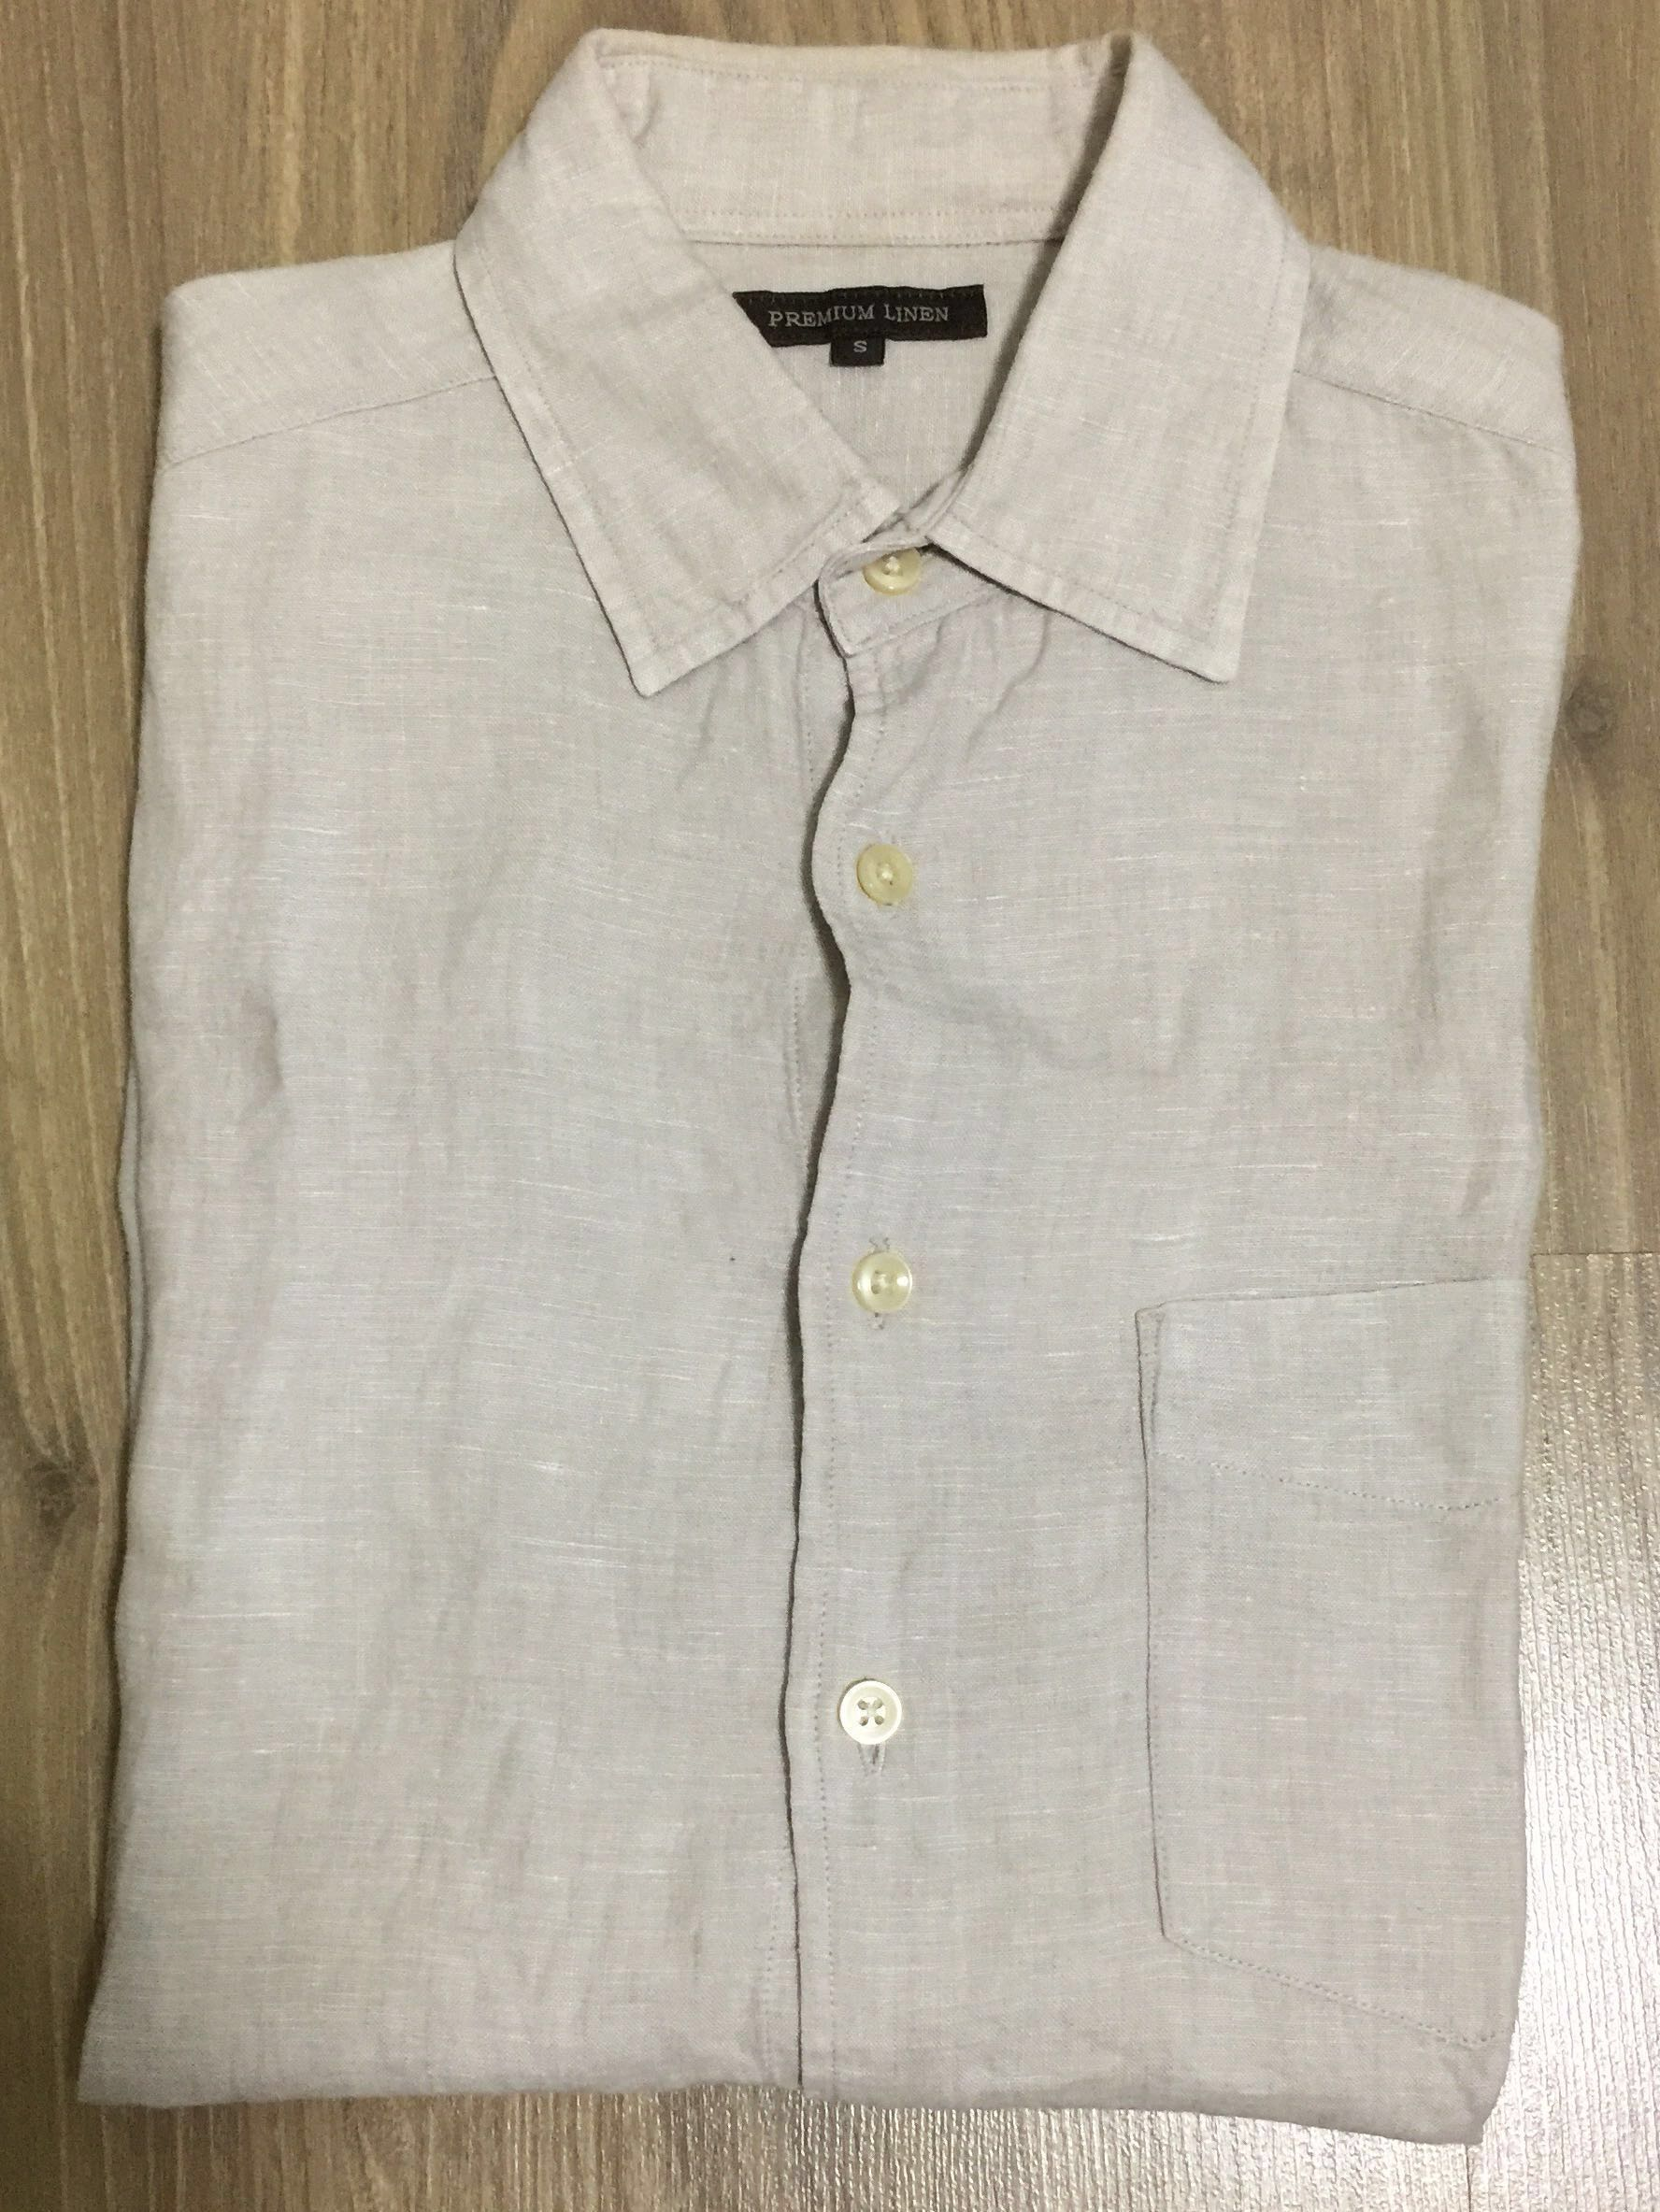 ac694672308f90 Uniqlo Premium Linen Long Sleeve Shirt - Beige, Men's Fashion, Clothes, Tops  on Carousell